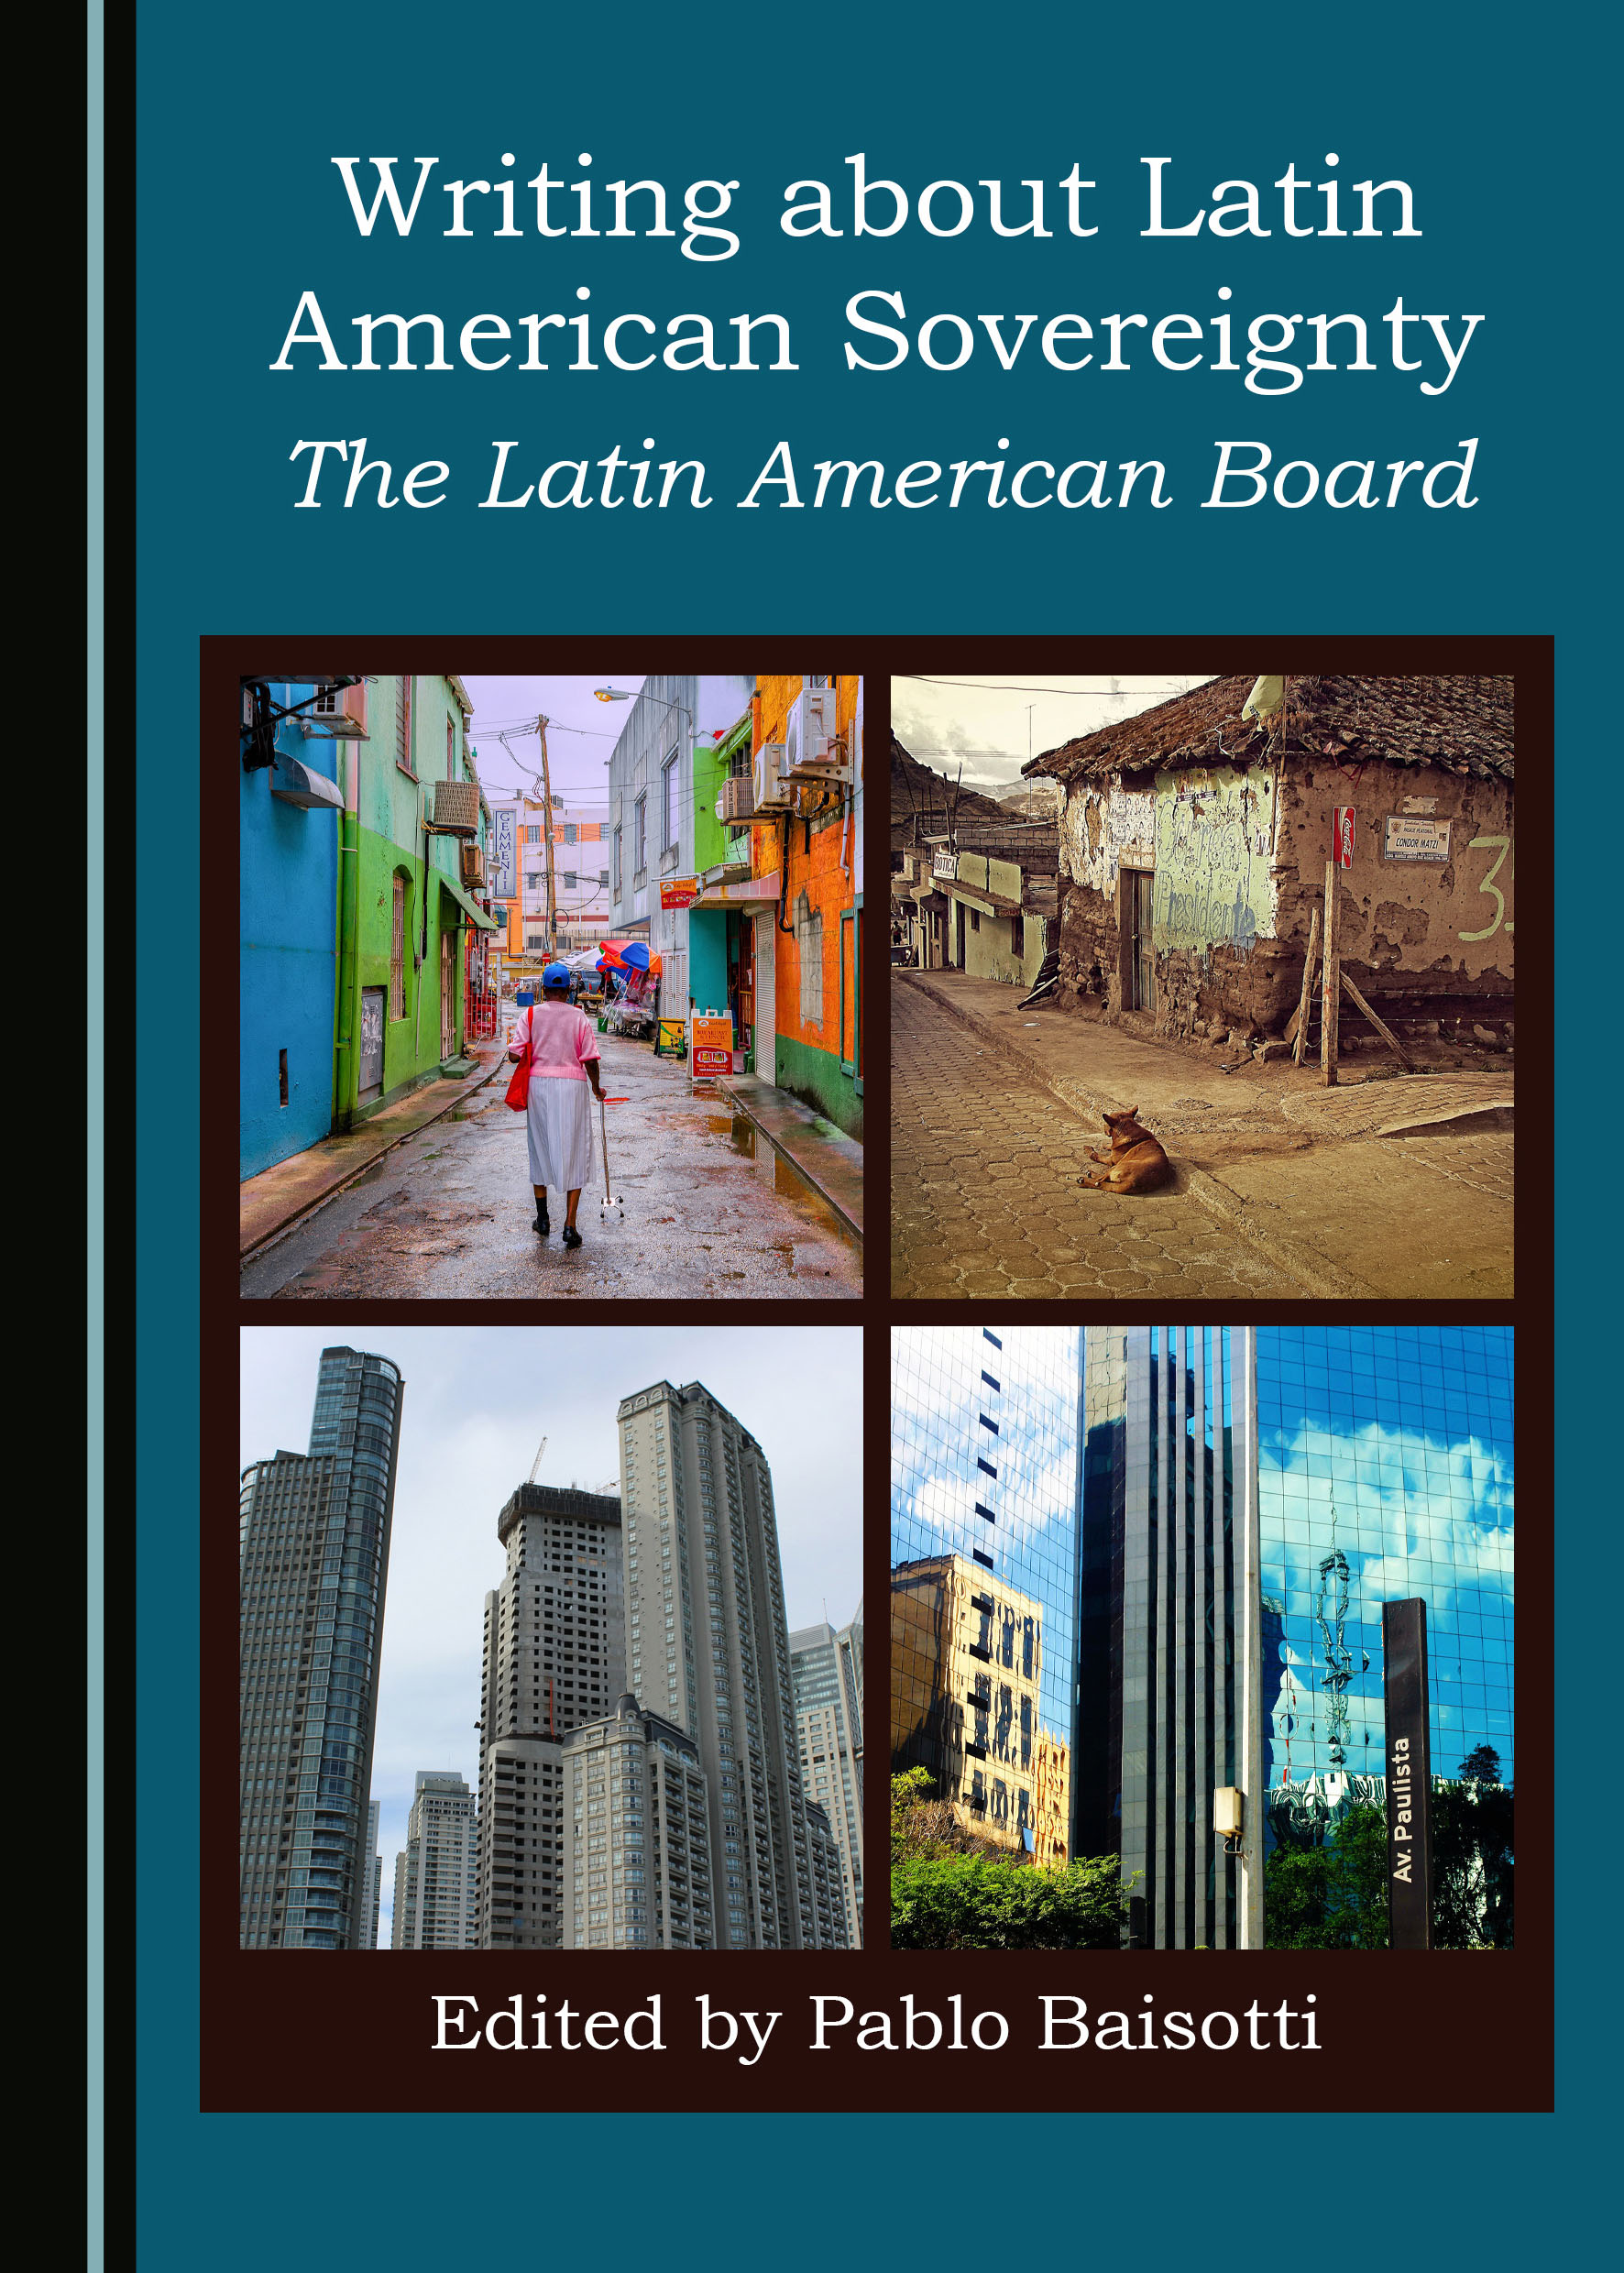 Writing about Latin American Sovereignty: The Latin American Board